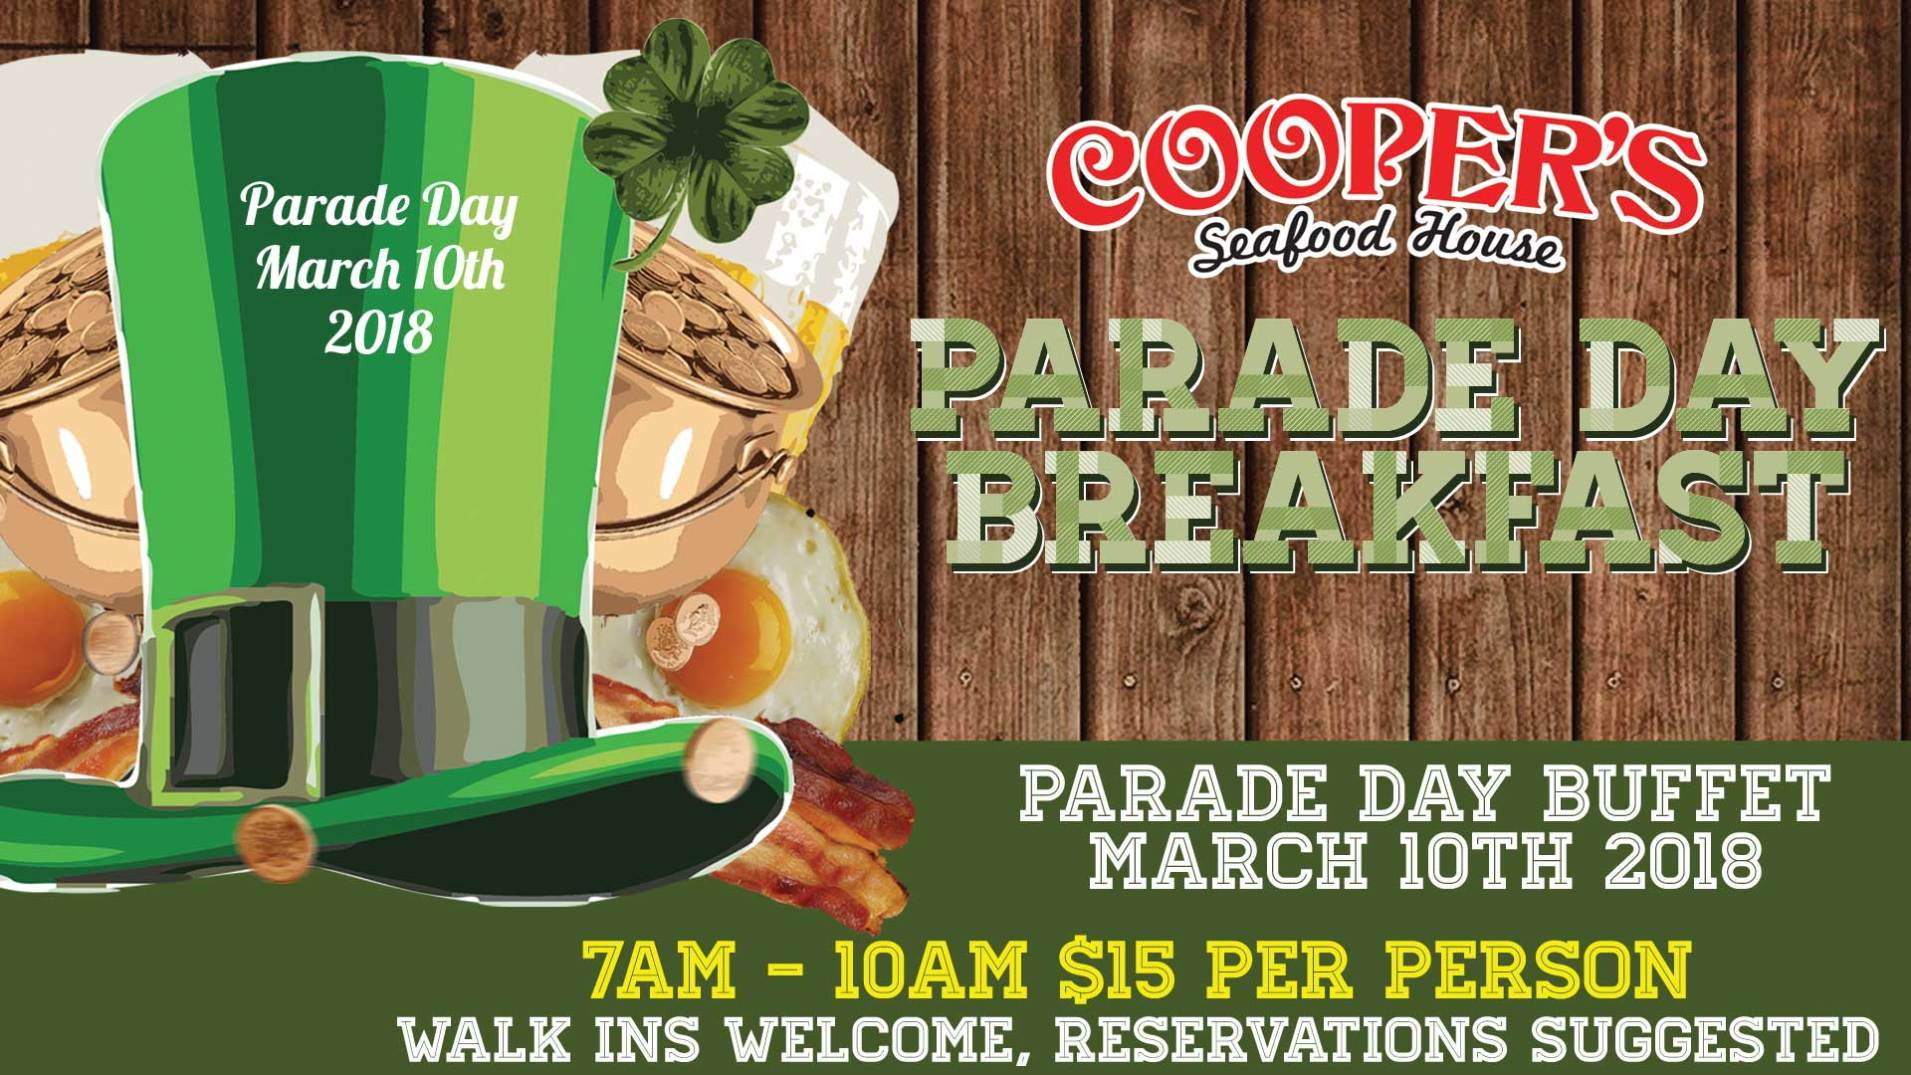 Enjoyable Parade Day Coopers Seafood House Home Interior And Landscaping Ologienasavecom